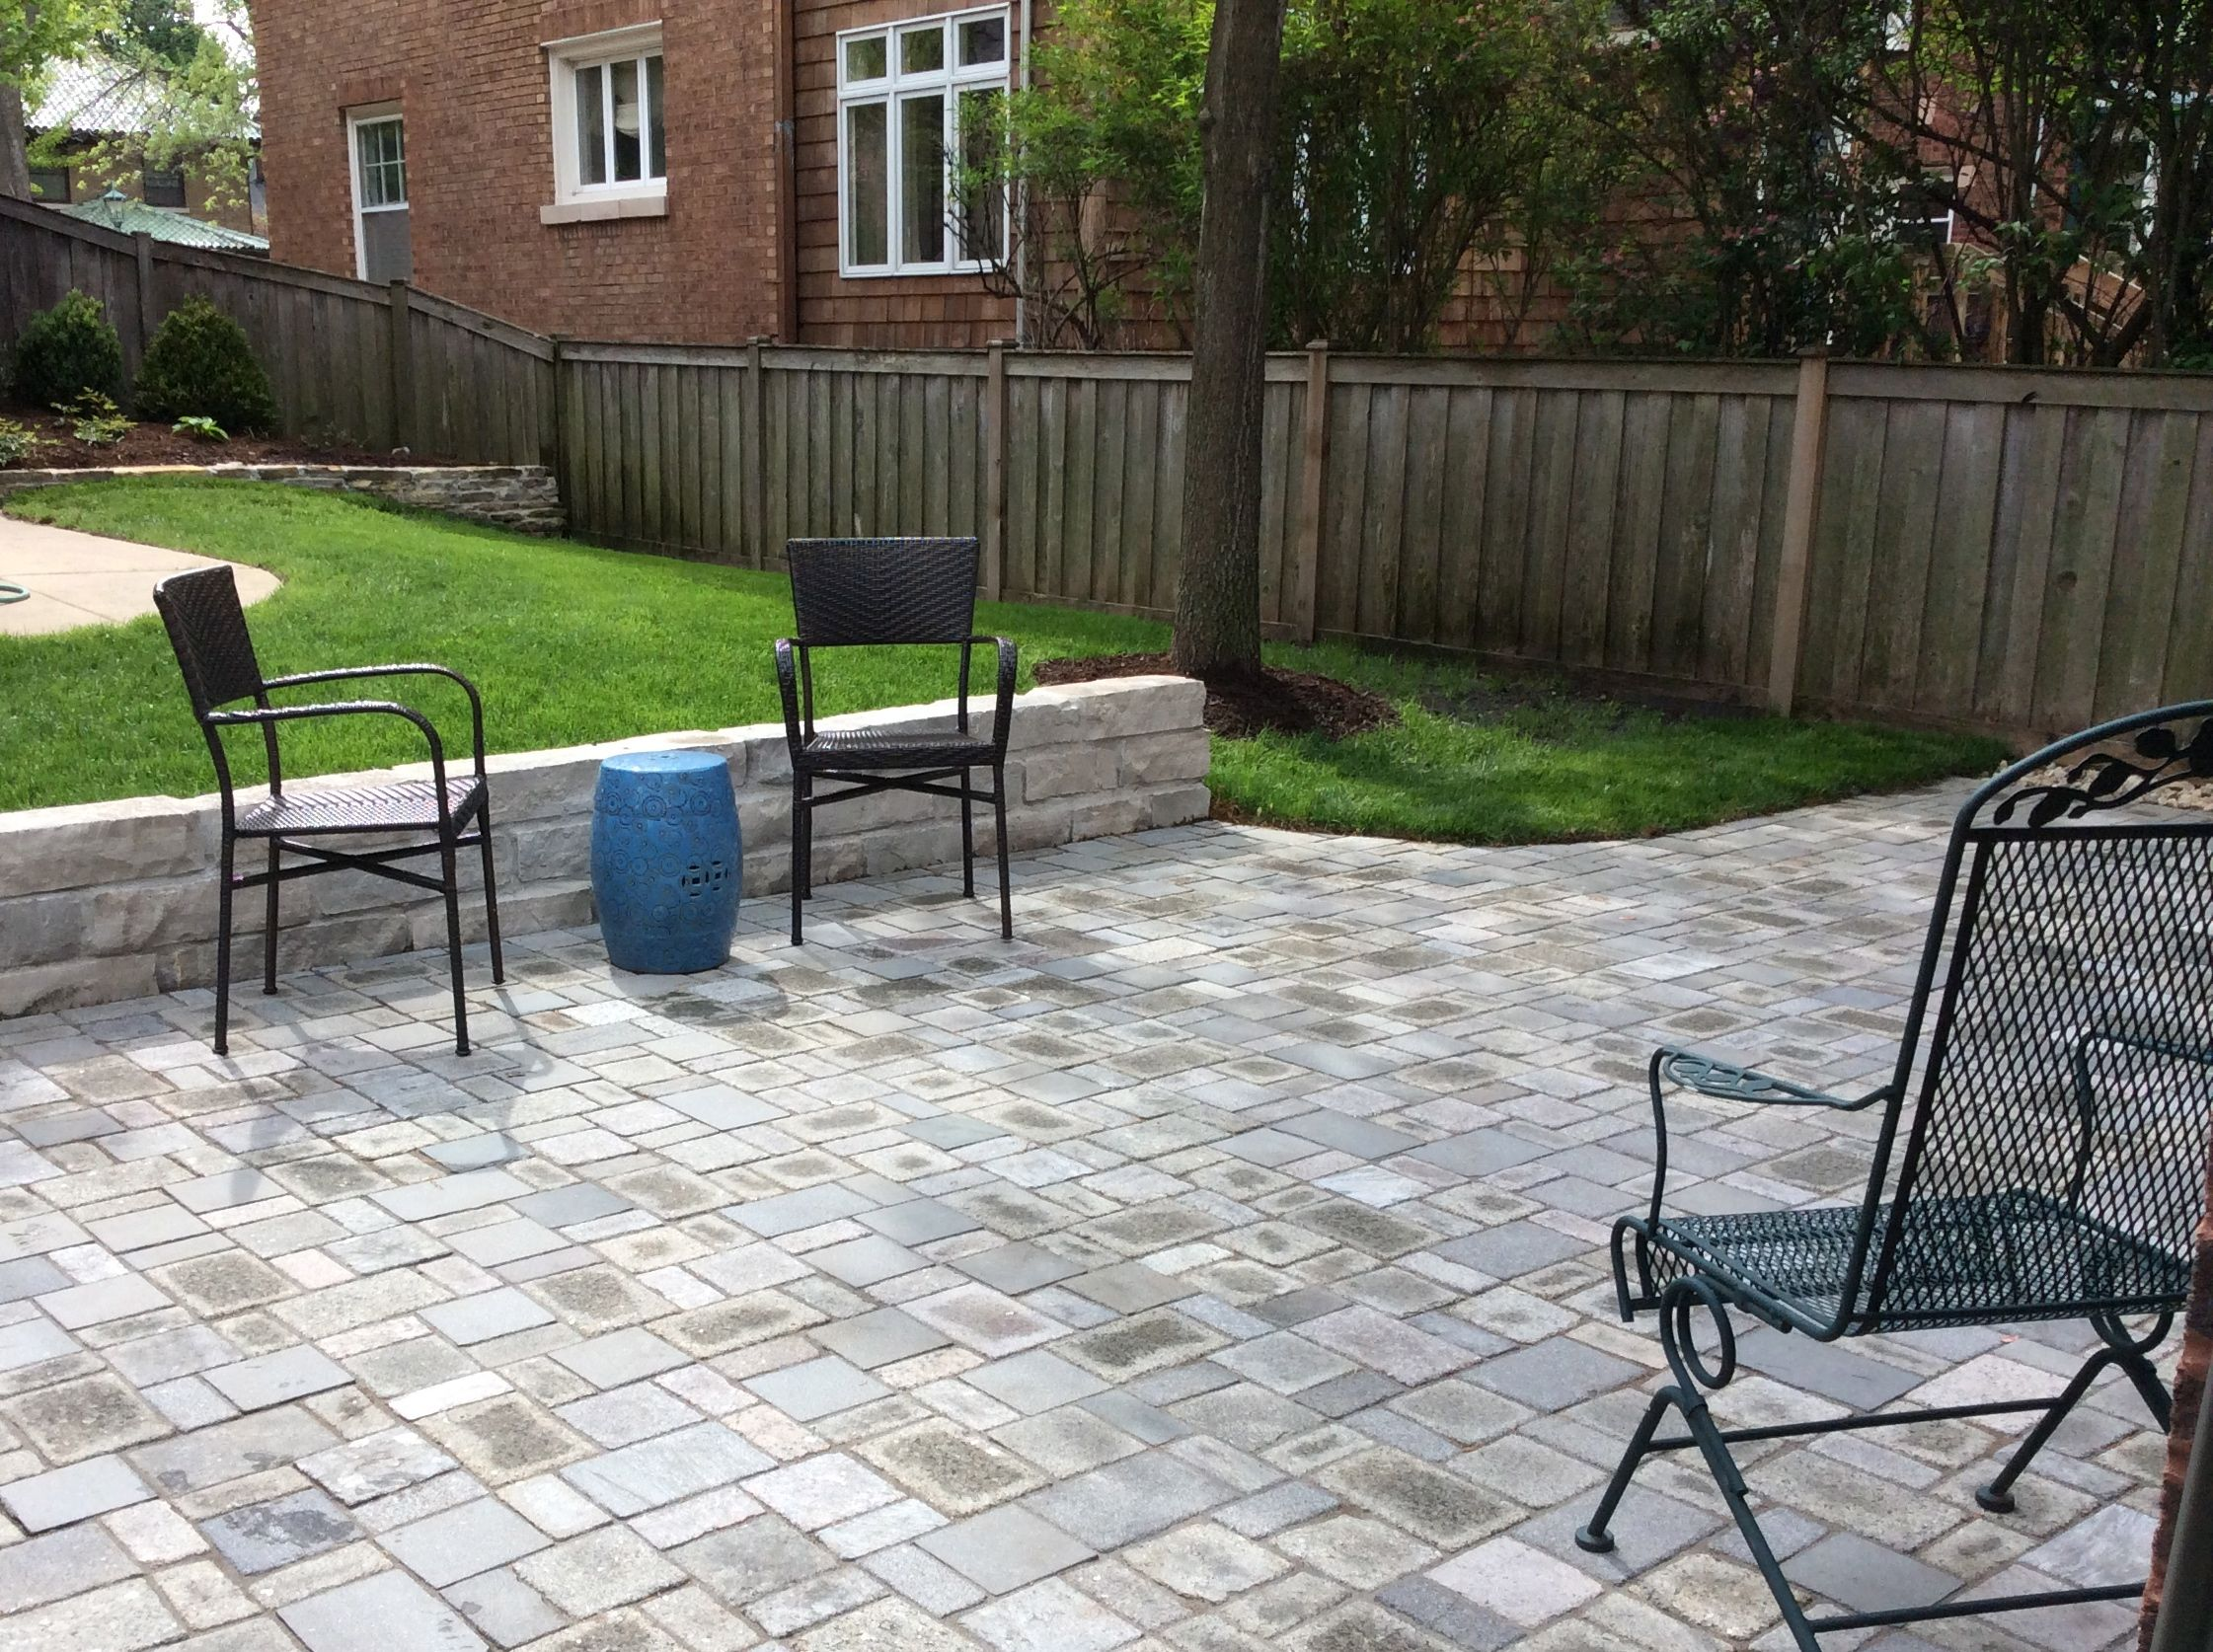 Patio Pavers Made With Recycled Granite Countertop | Earth Stone Midwest |  Design By Twig Landscape